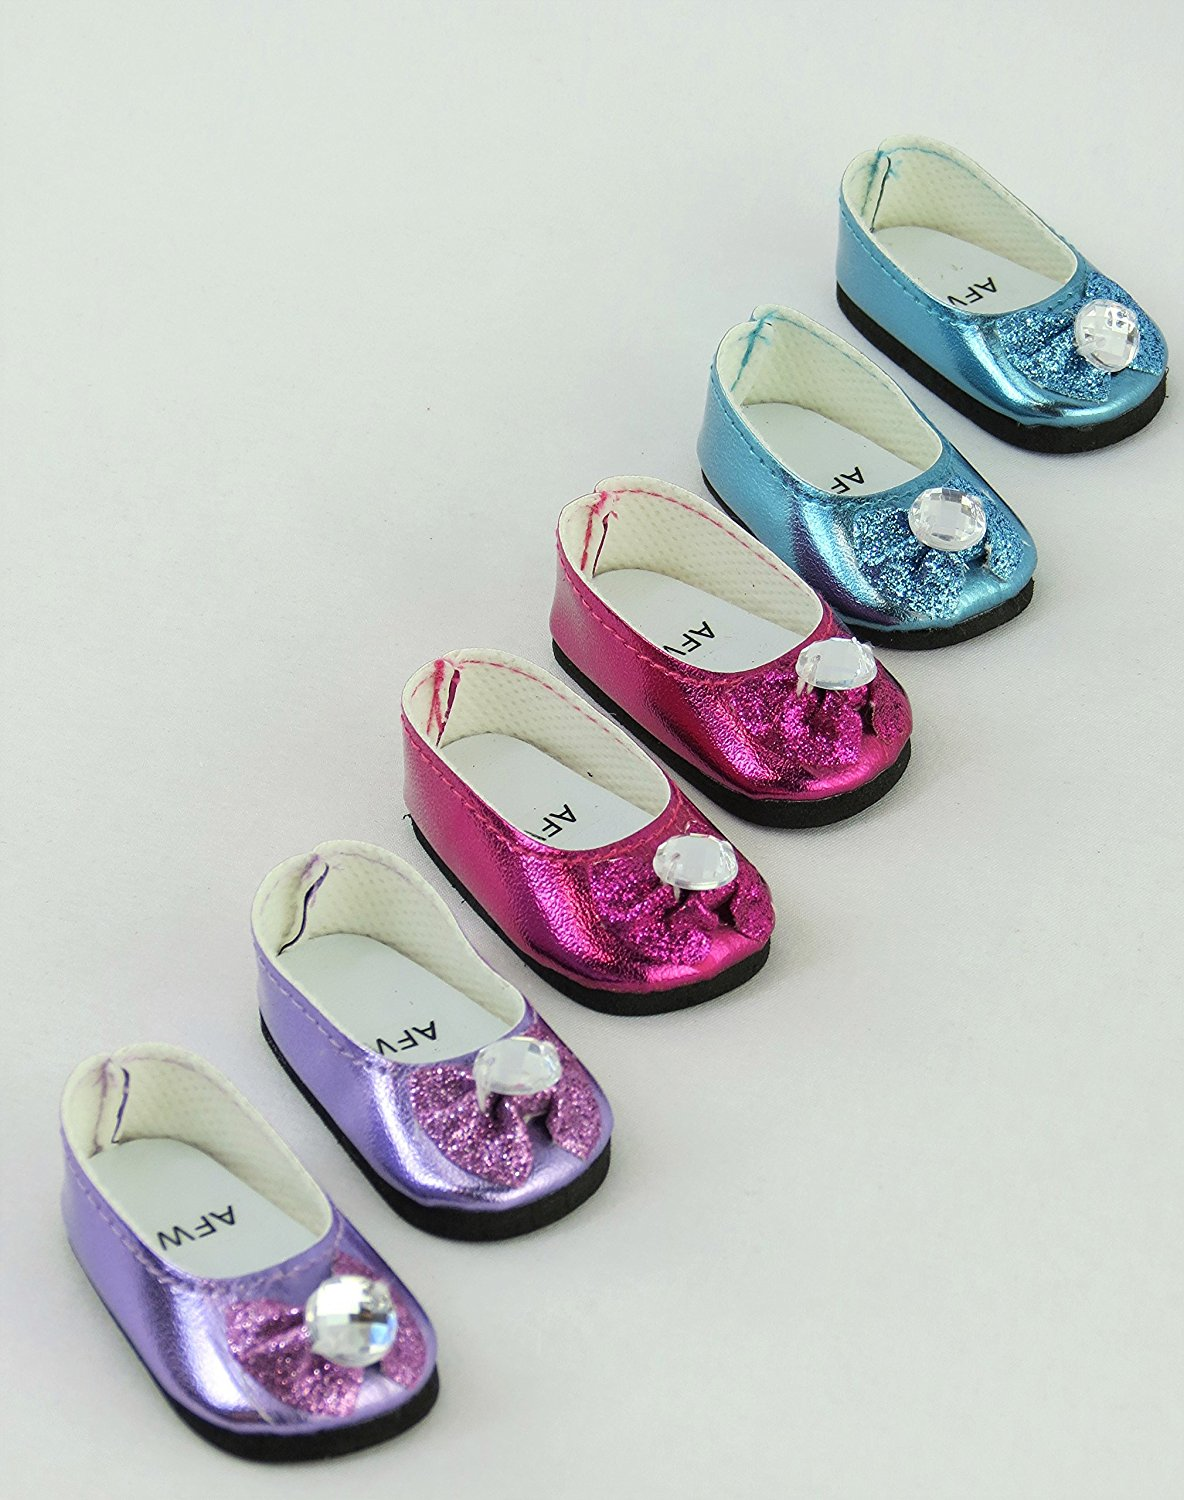 """3 Pack of Metallic Diamond Bow Flats: Hot Pink, Lavender, and Teal 